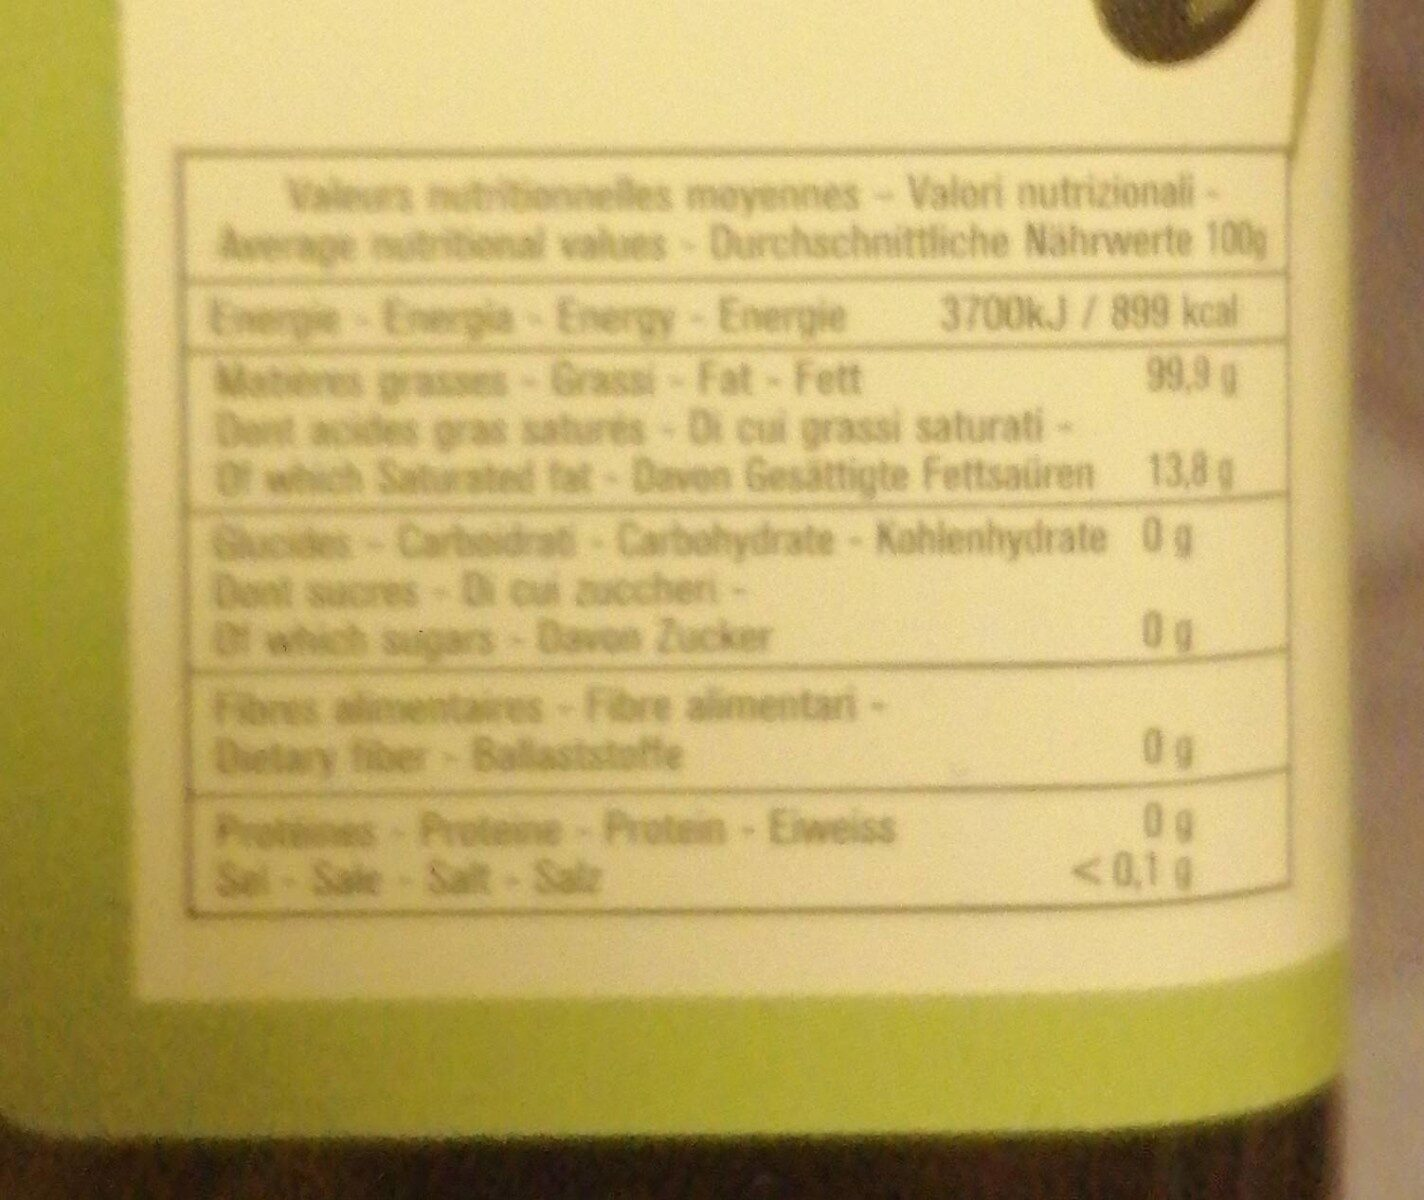 Huile d'olive vierge extra - Nutrition facts - fr